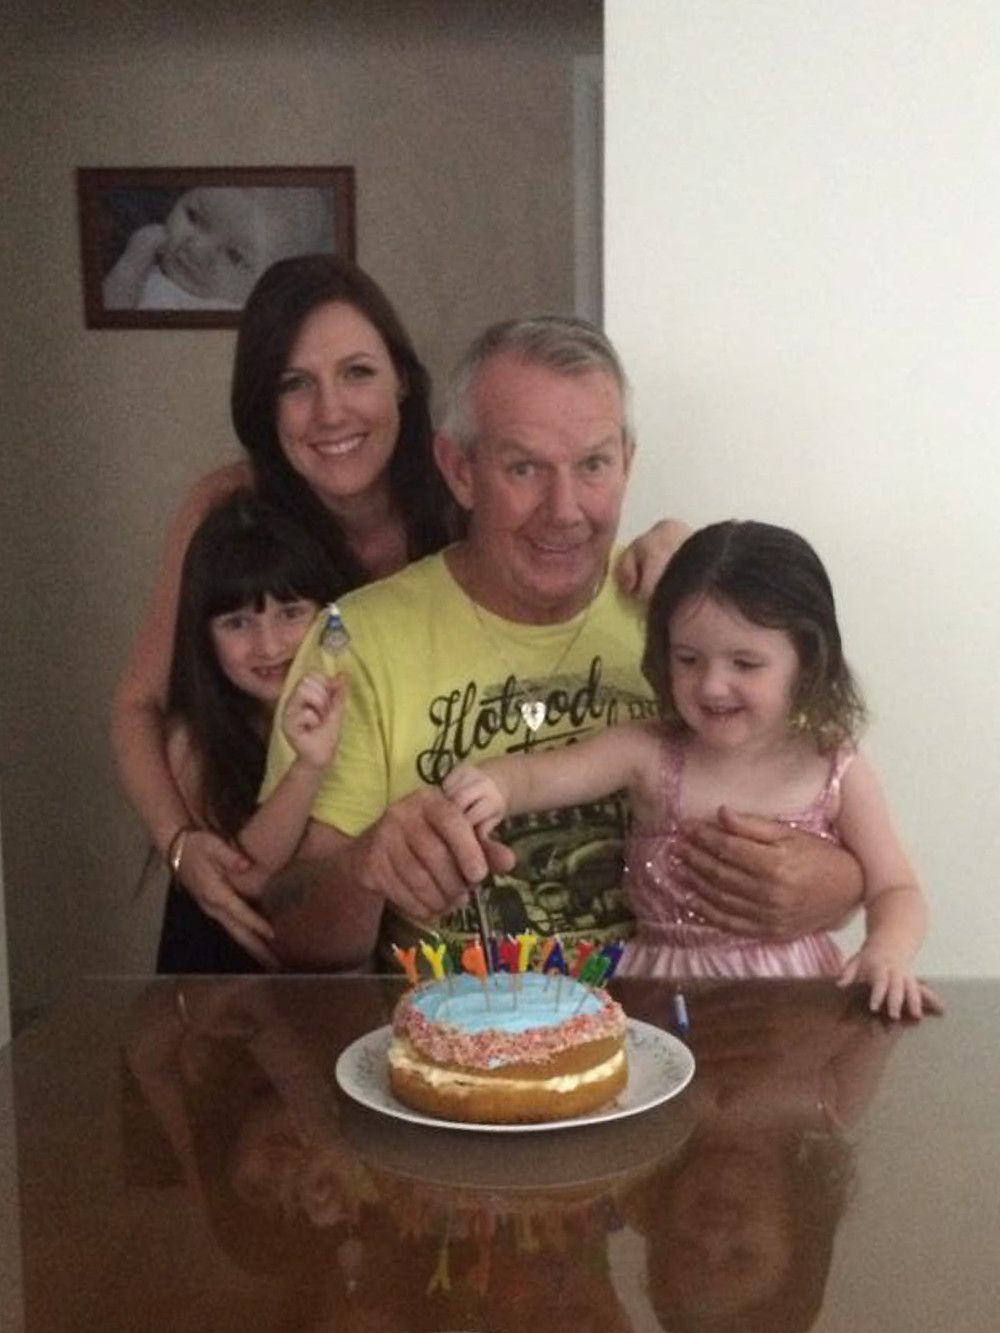 Poppy with his girls on his birthday